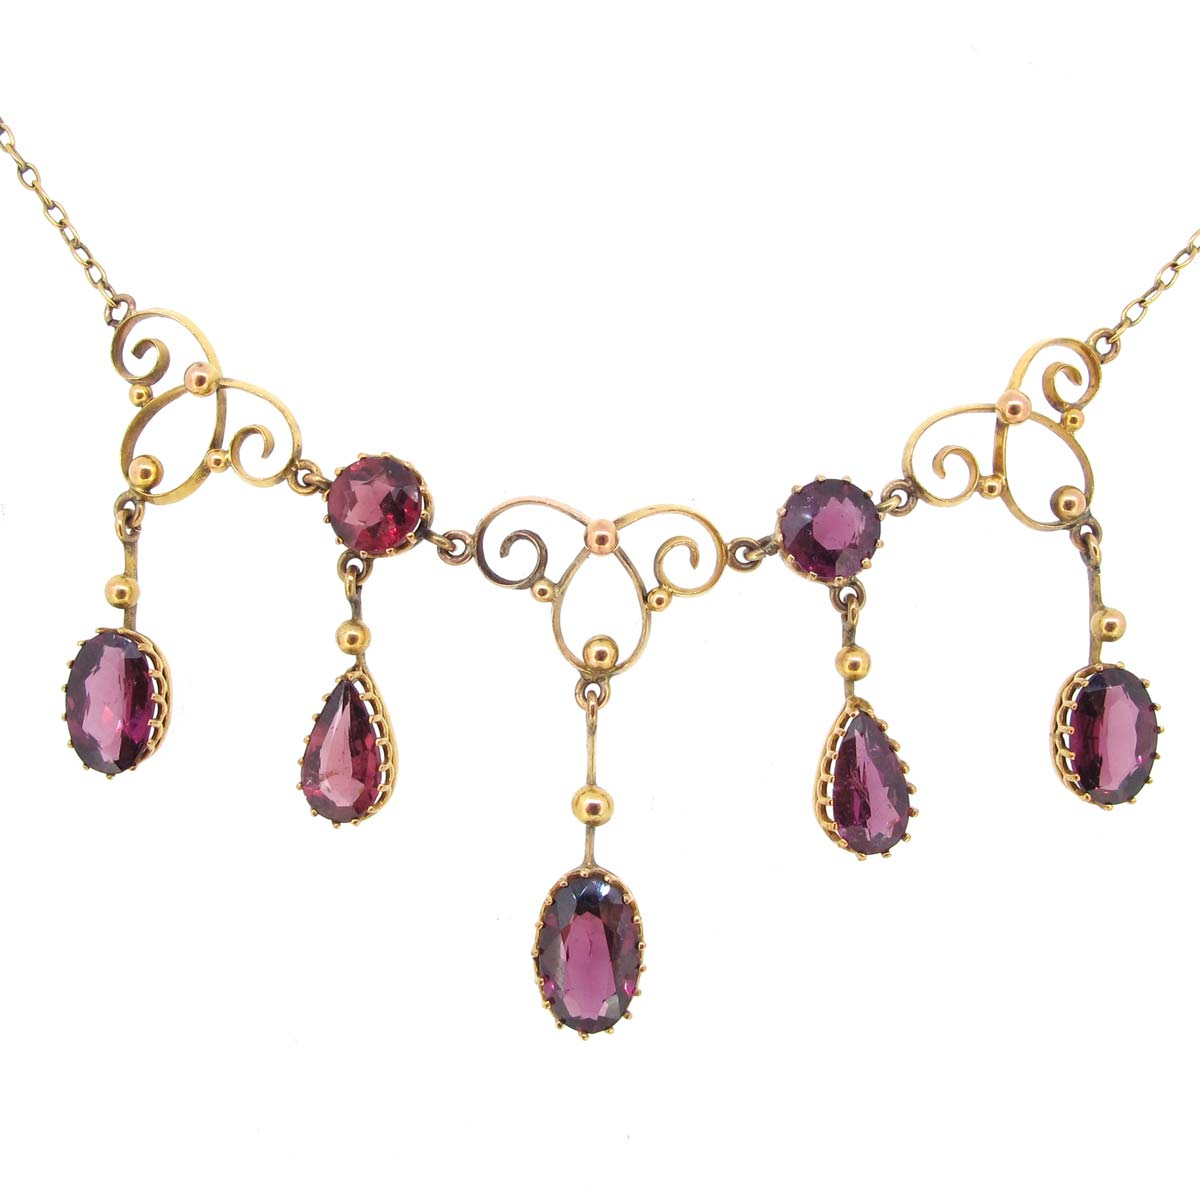 Edwardian Gold & Garnet Drop Necklace